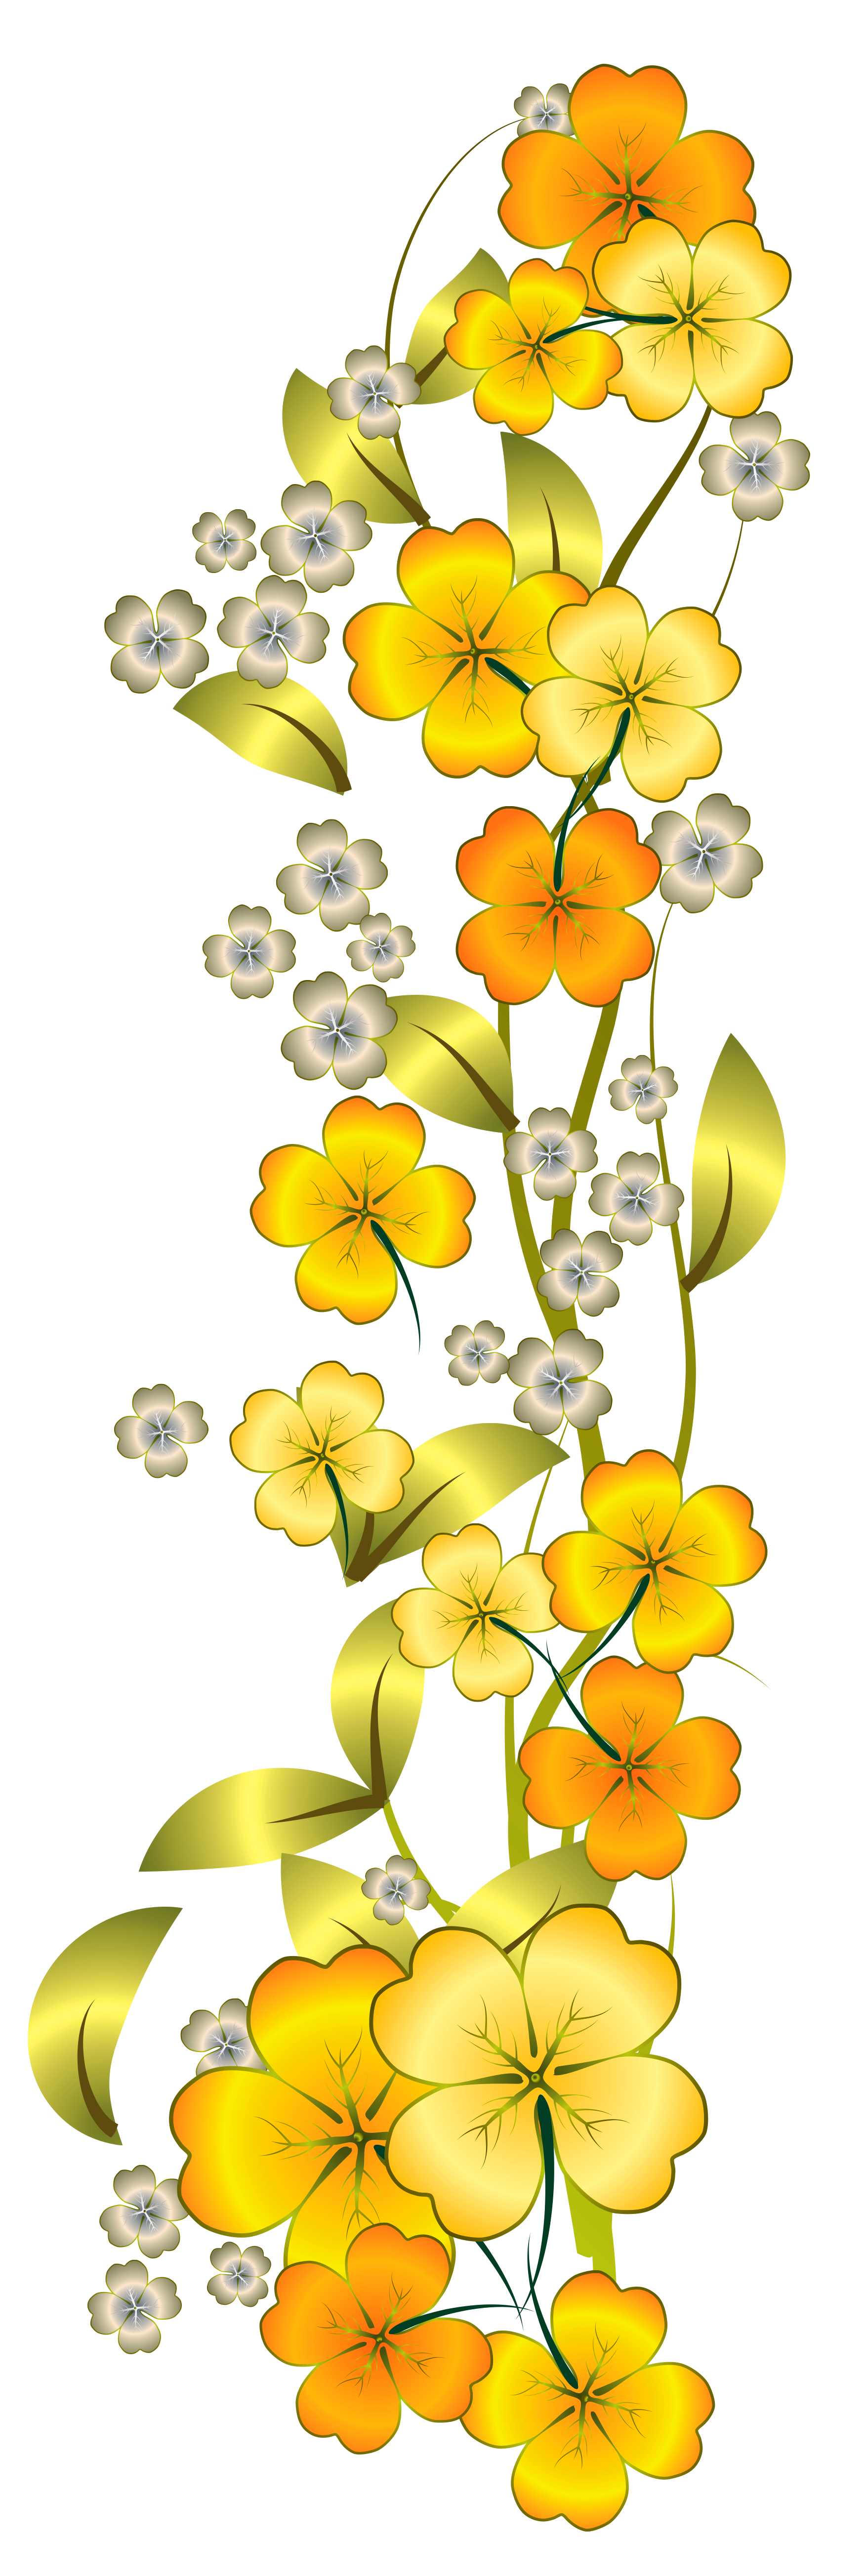 Yellow flowers png. Flower decor clipart pinterest